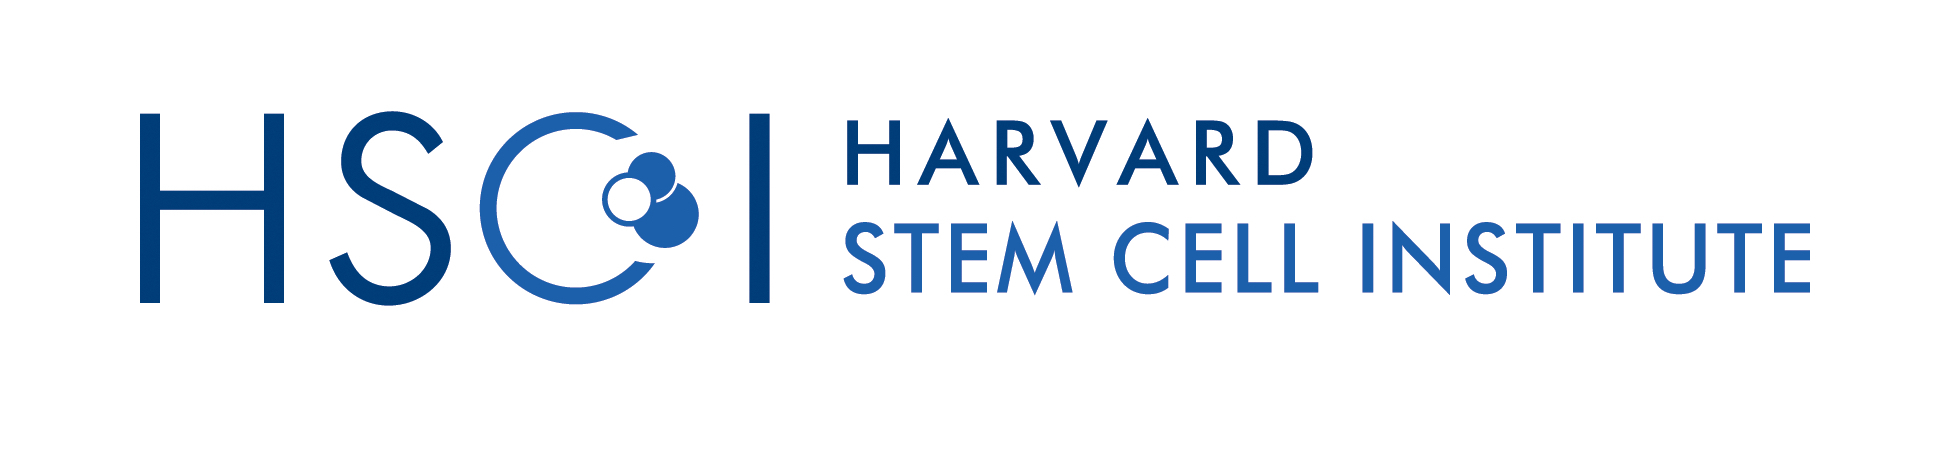 Bristol-Myers Squibb and Harvard Announce New Fibrosis ...